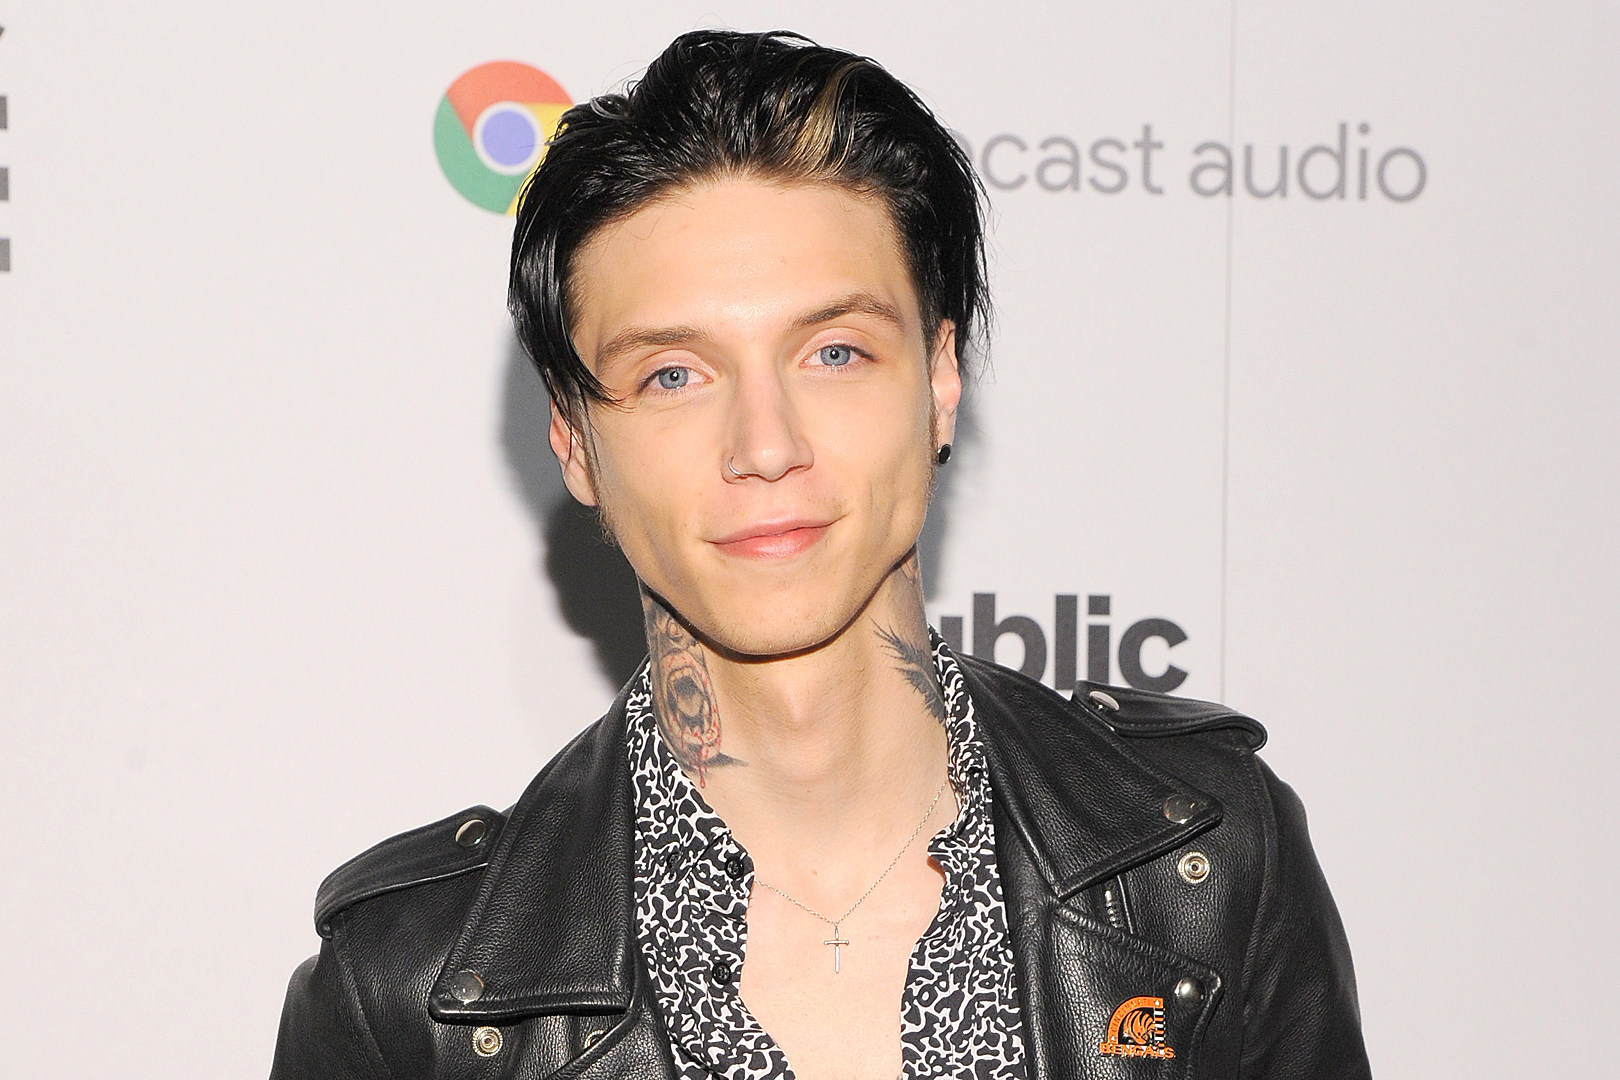 Andy Biersack Finishes a New Book, Plus News on Through Fire, Powerman 5000 + More